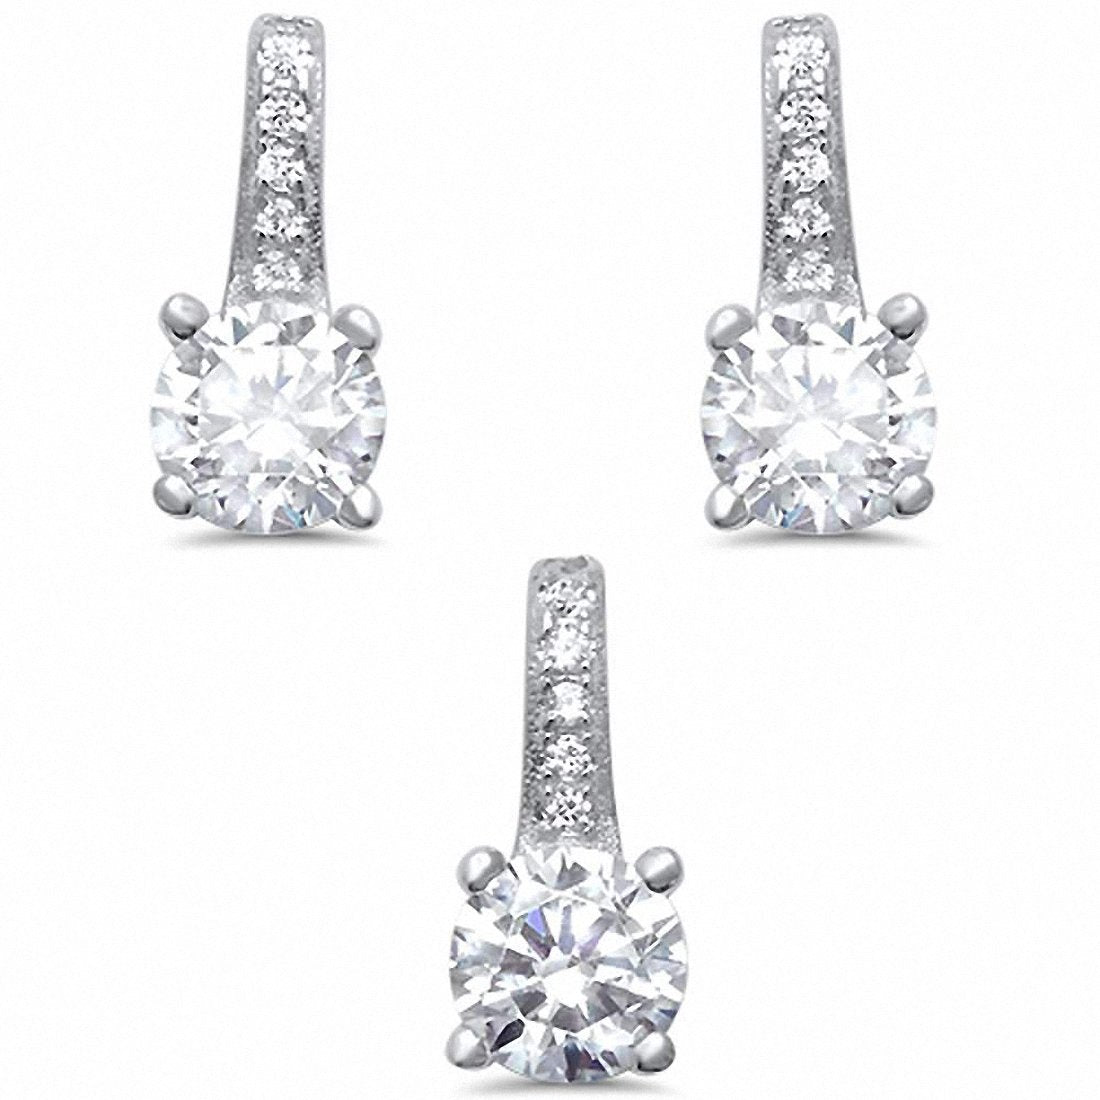 Solitaire Accent Jewelry Set Round Cubic Zirconia 925 Sterling Silver Choose Color